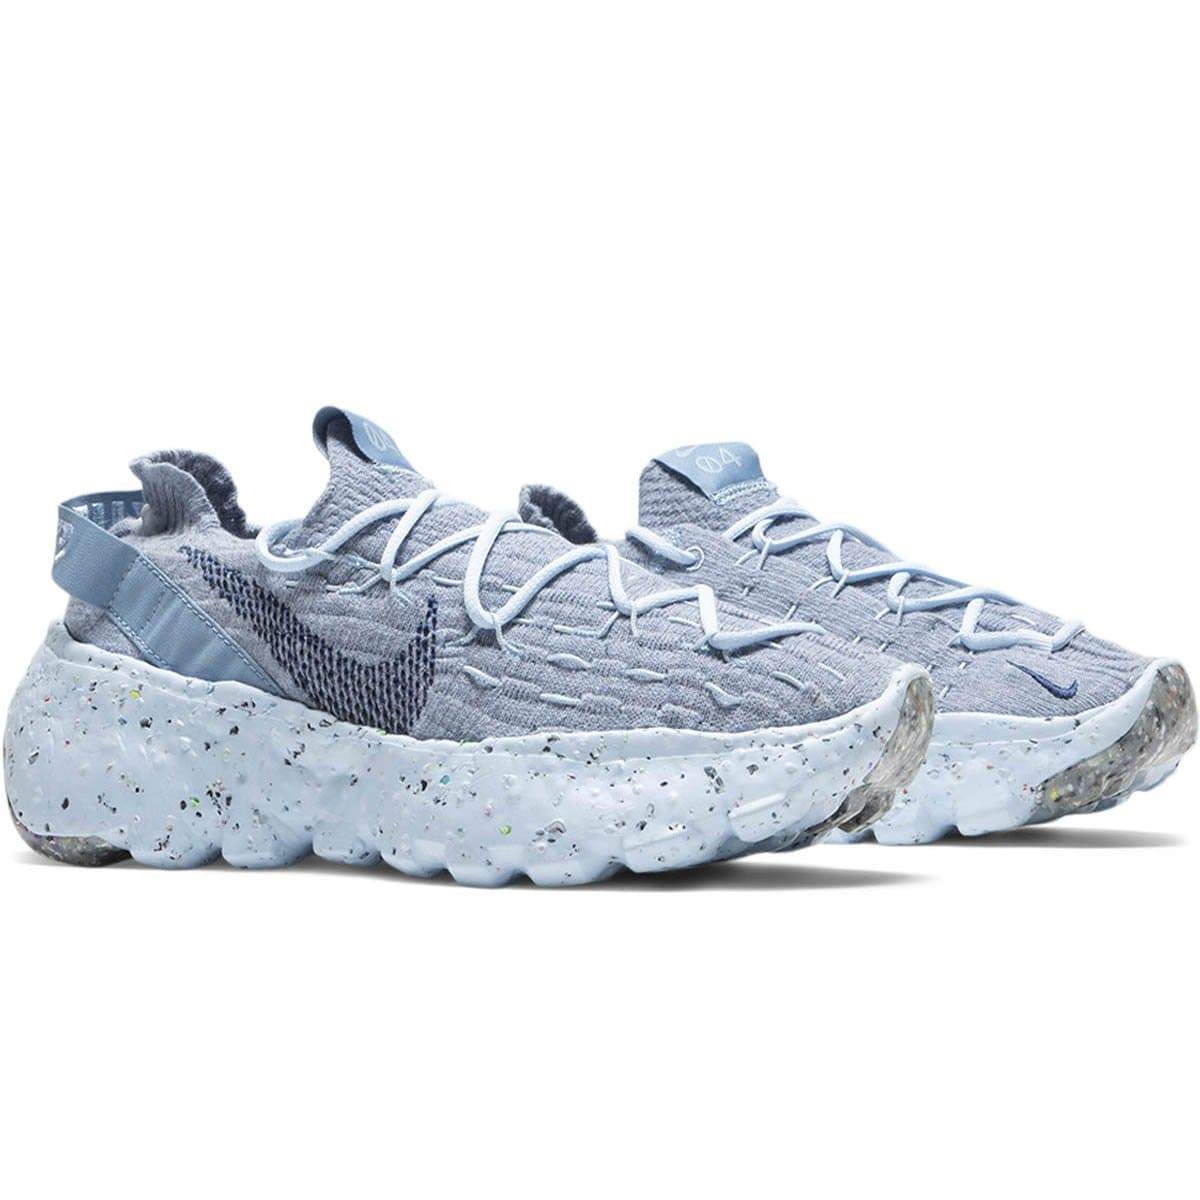 Nike Shoes WOMEN'S SPACE HIPPIE 04